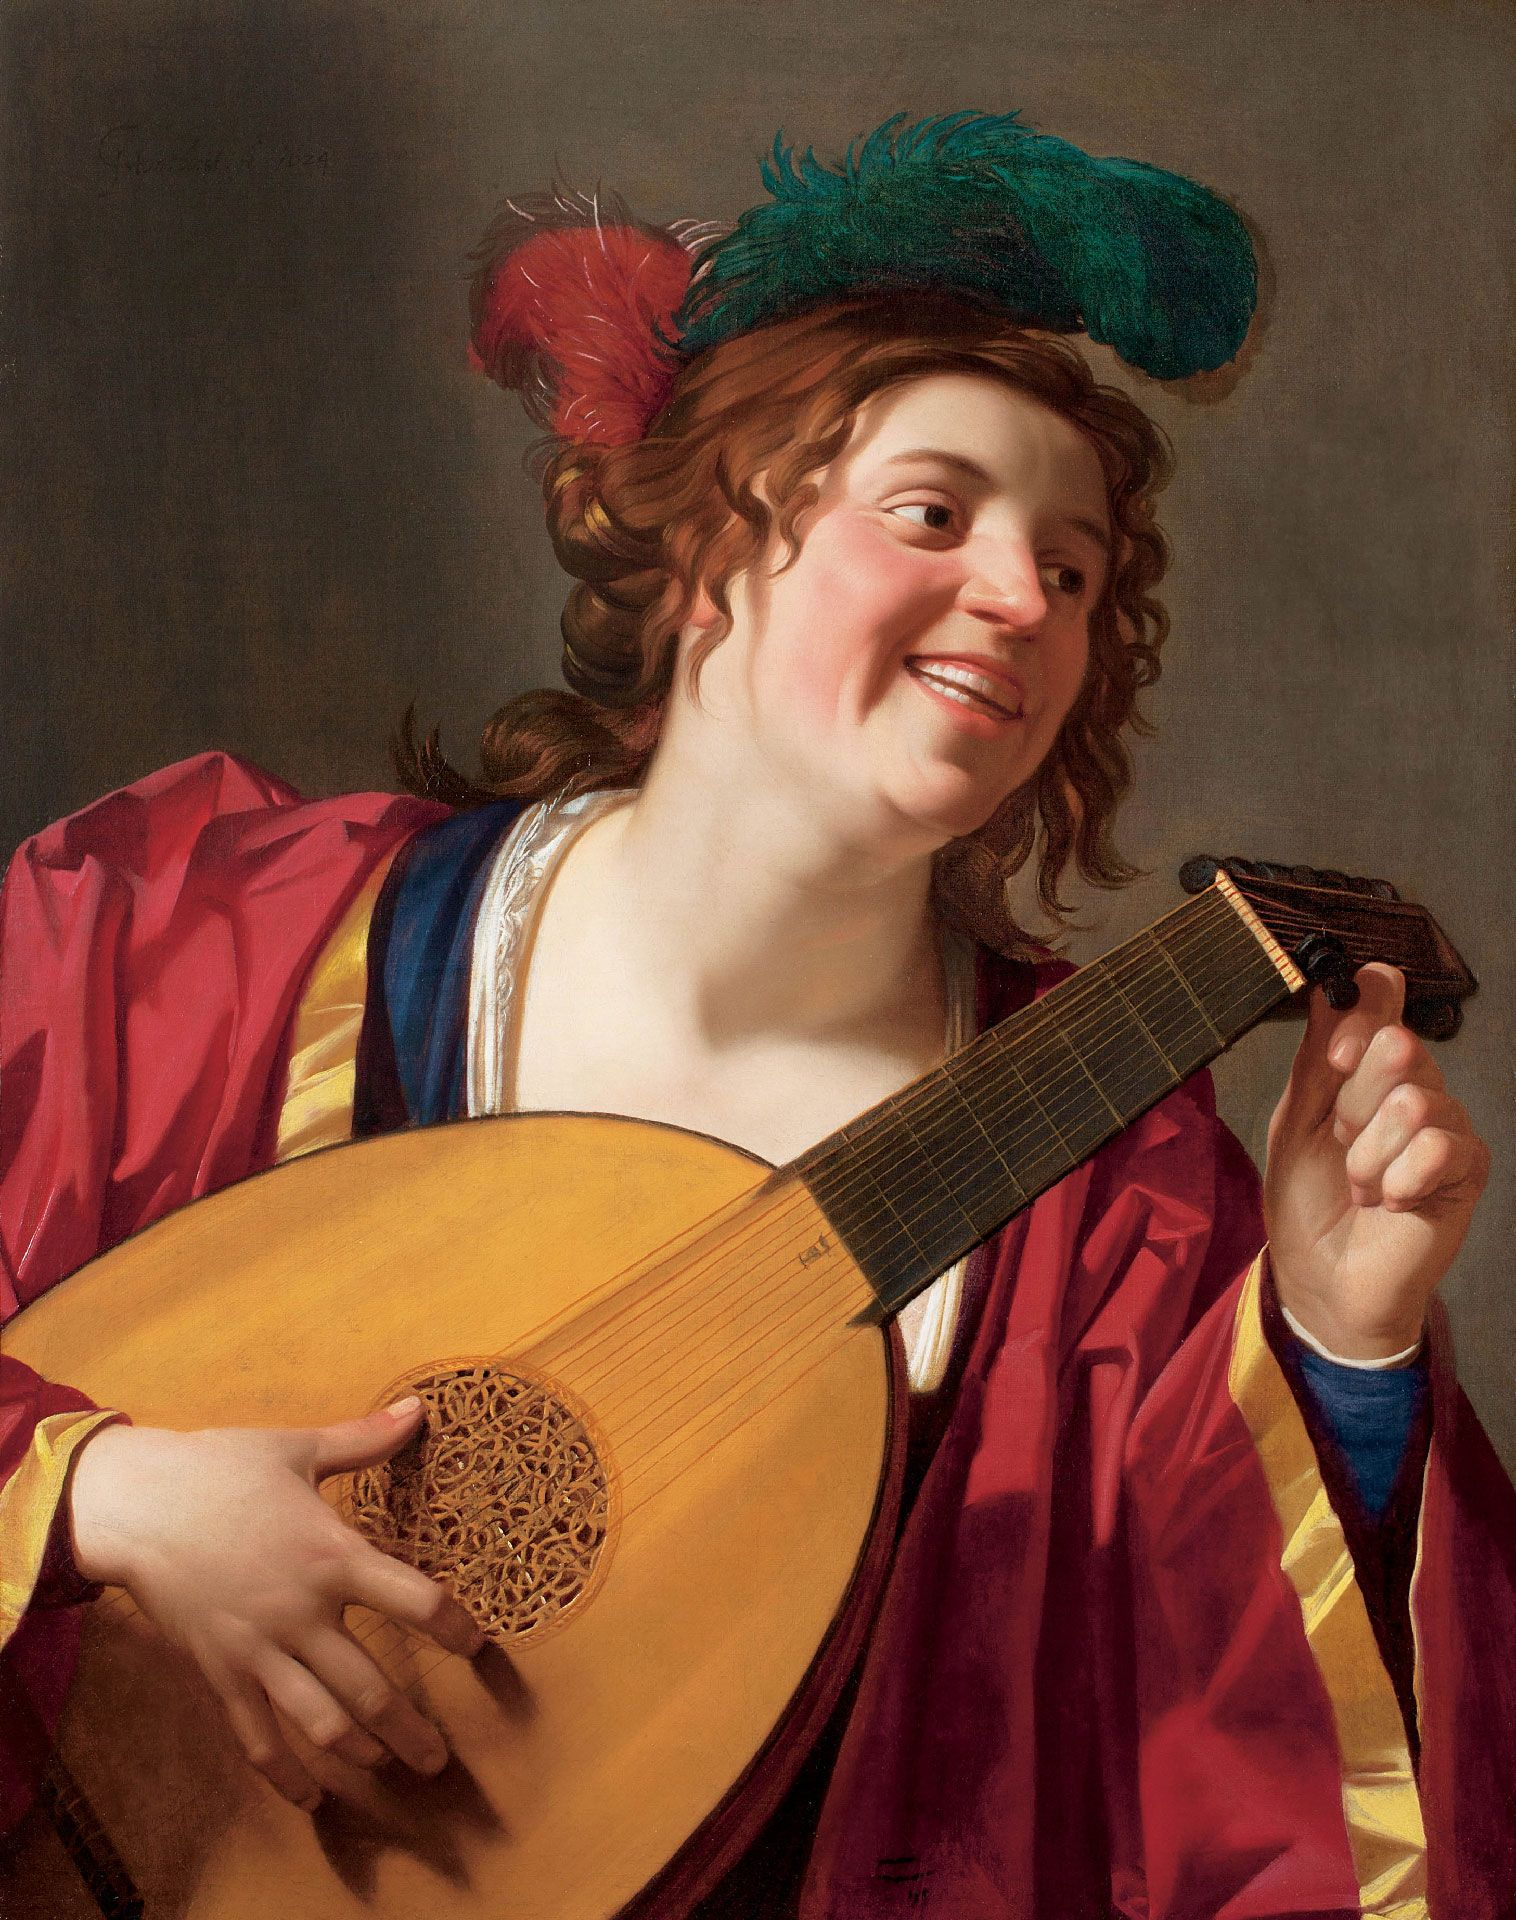 Gerrit van Honthorst, Woman Tuning a Lute, 1624, oil on canvas, 81.5 x 64.5 cm. Purchase, Horsley and Annie Townsend Bequest, William Gilman Cheney Bequest and the Museum Campaign 1988-1993 Fund. The Museum dedicates this work to the memory of Ellen Clara and Bruno Richard Spiro, victims of the Holocaust